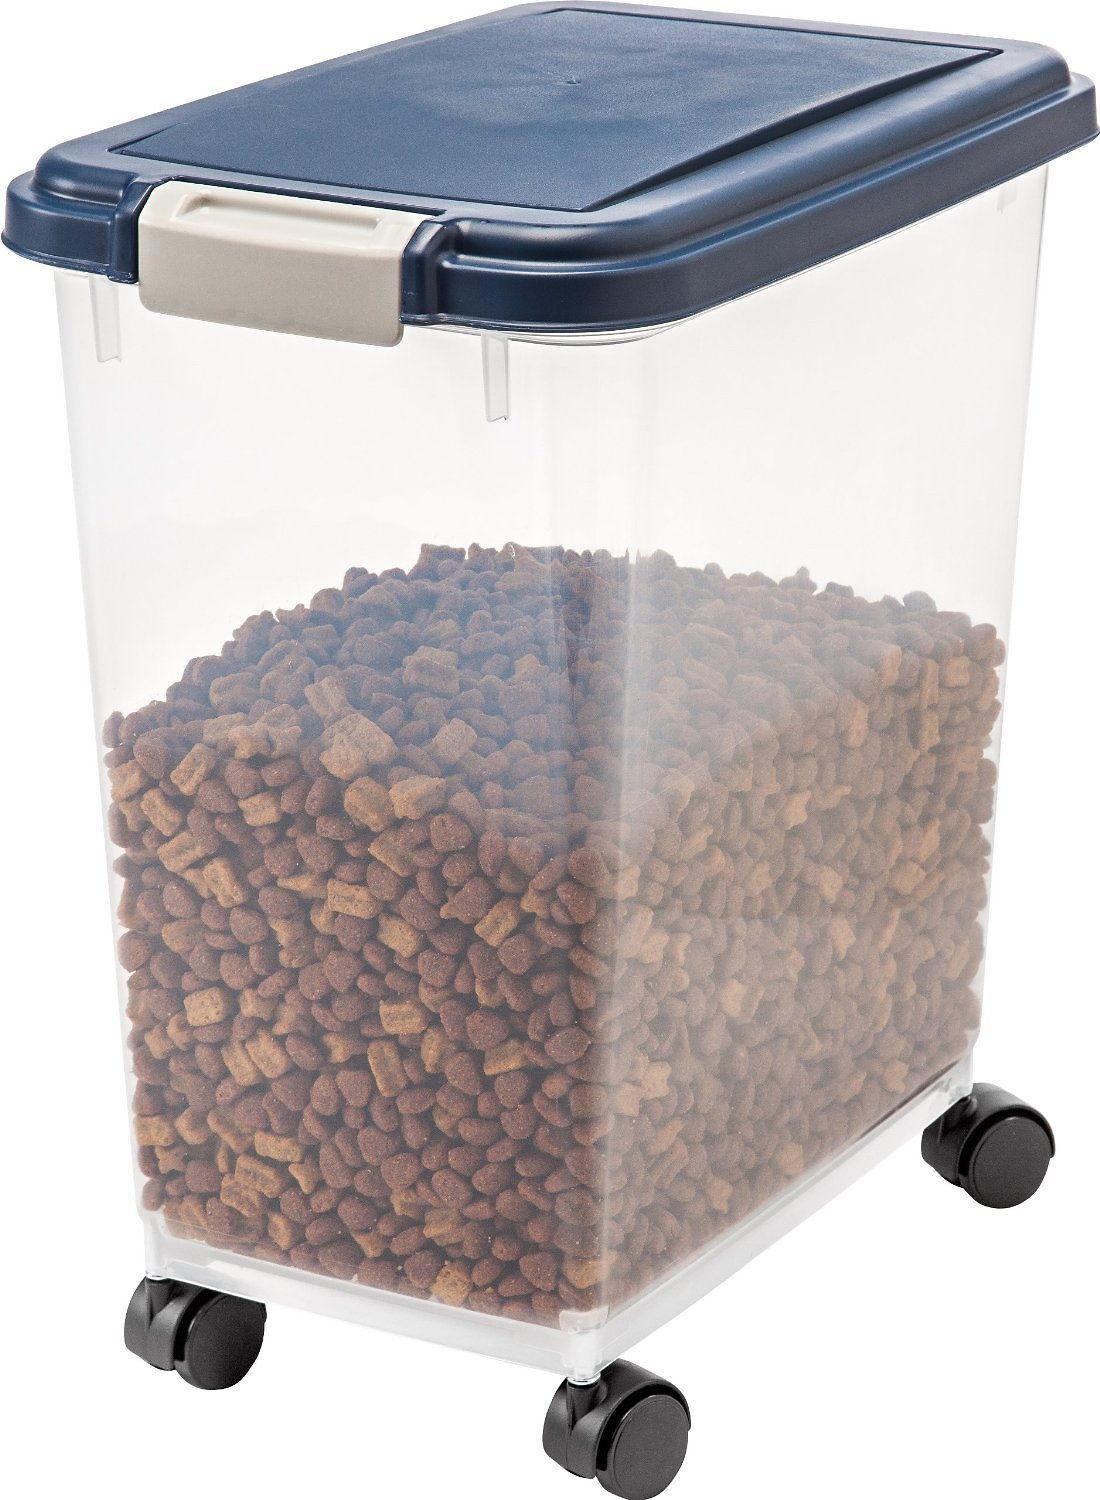 The 10 Best Dog Food Containers That Will Make Your Life Easier In 2019